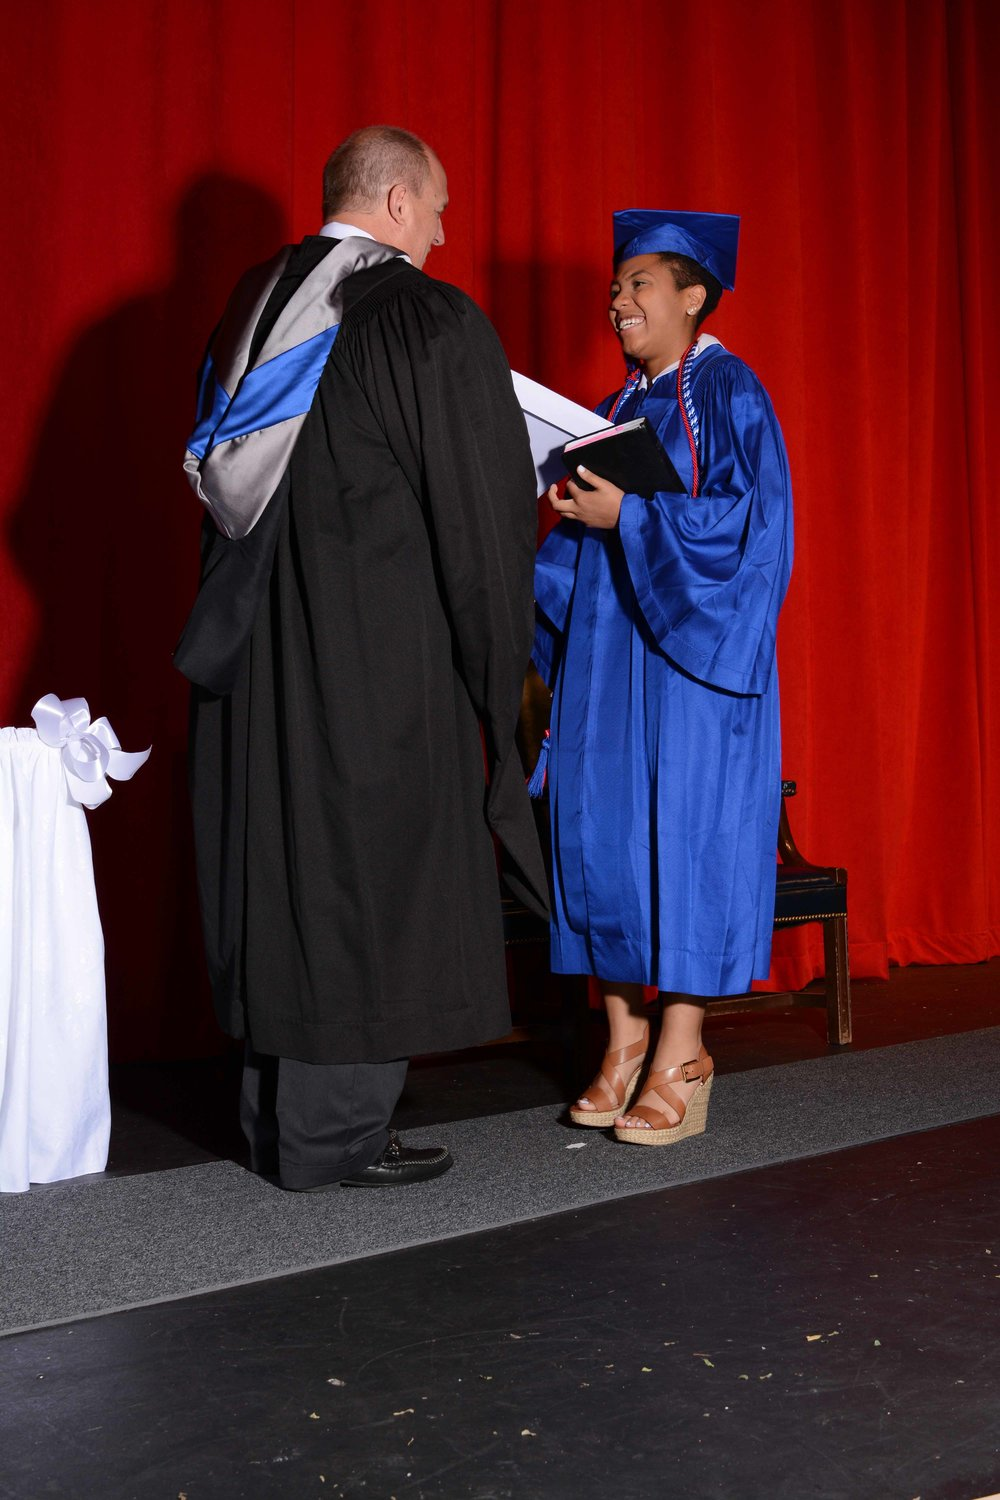 May15 HardingGraduation179.jpg